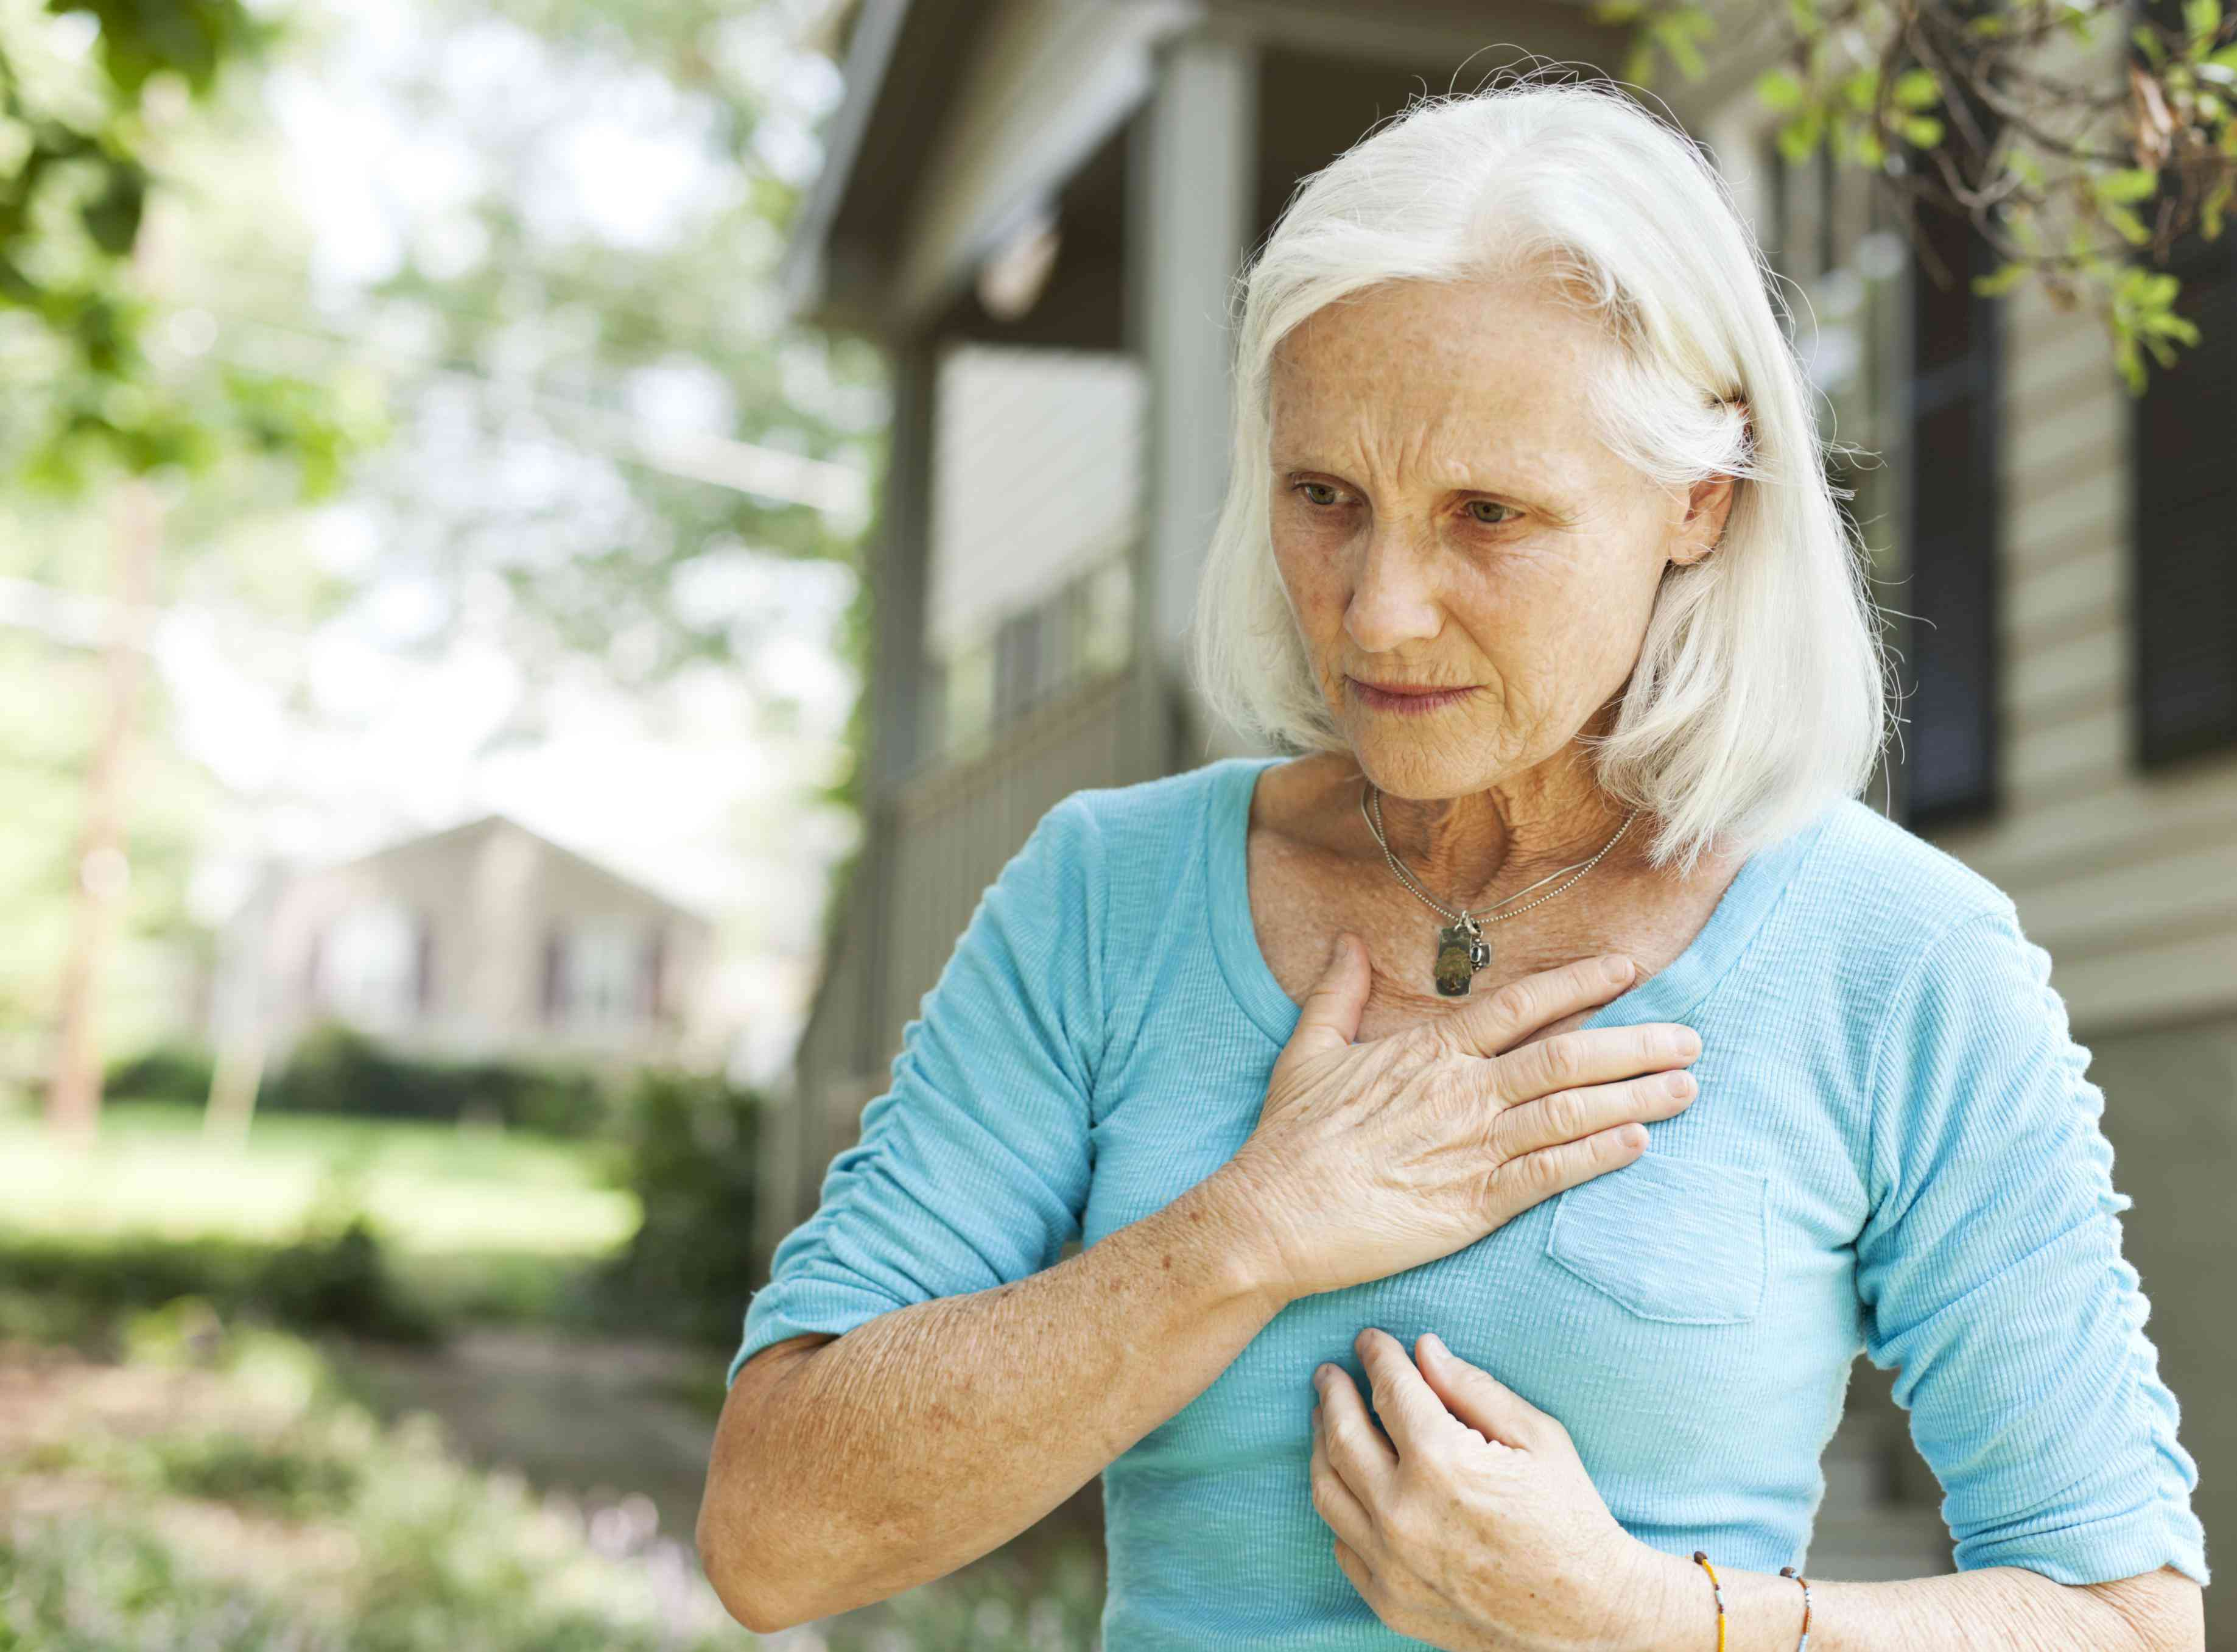 Older woman with shortness of breath